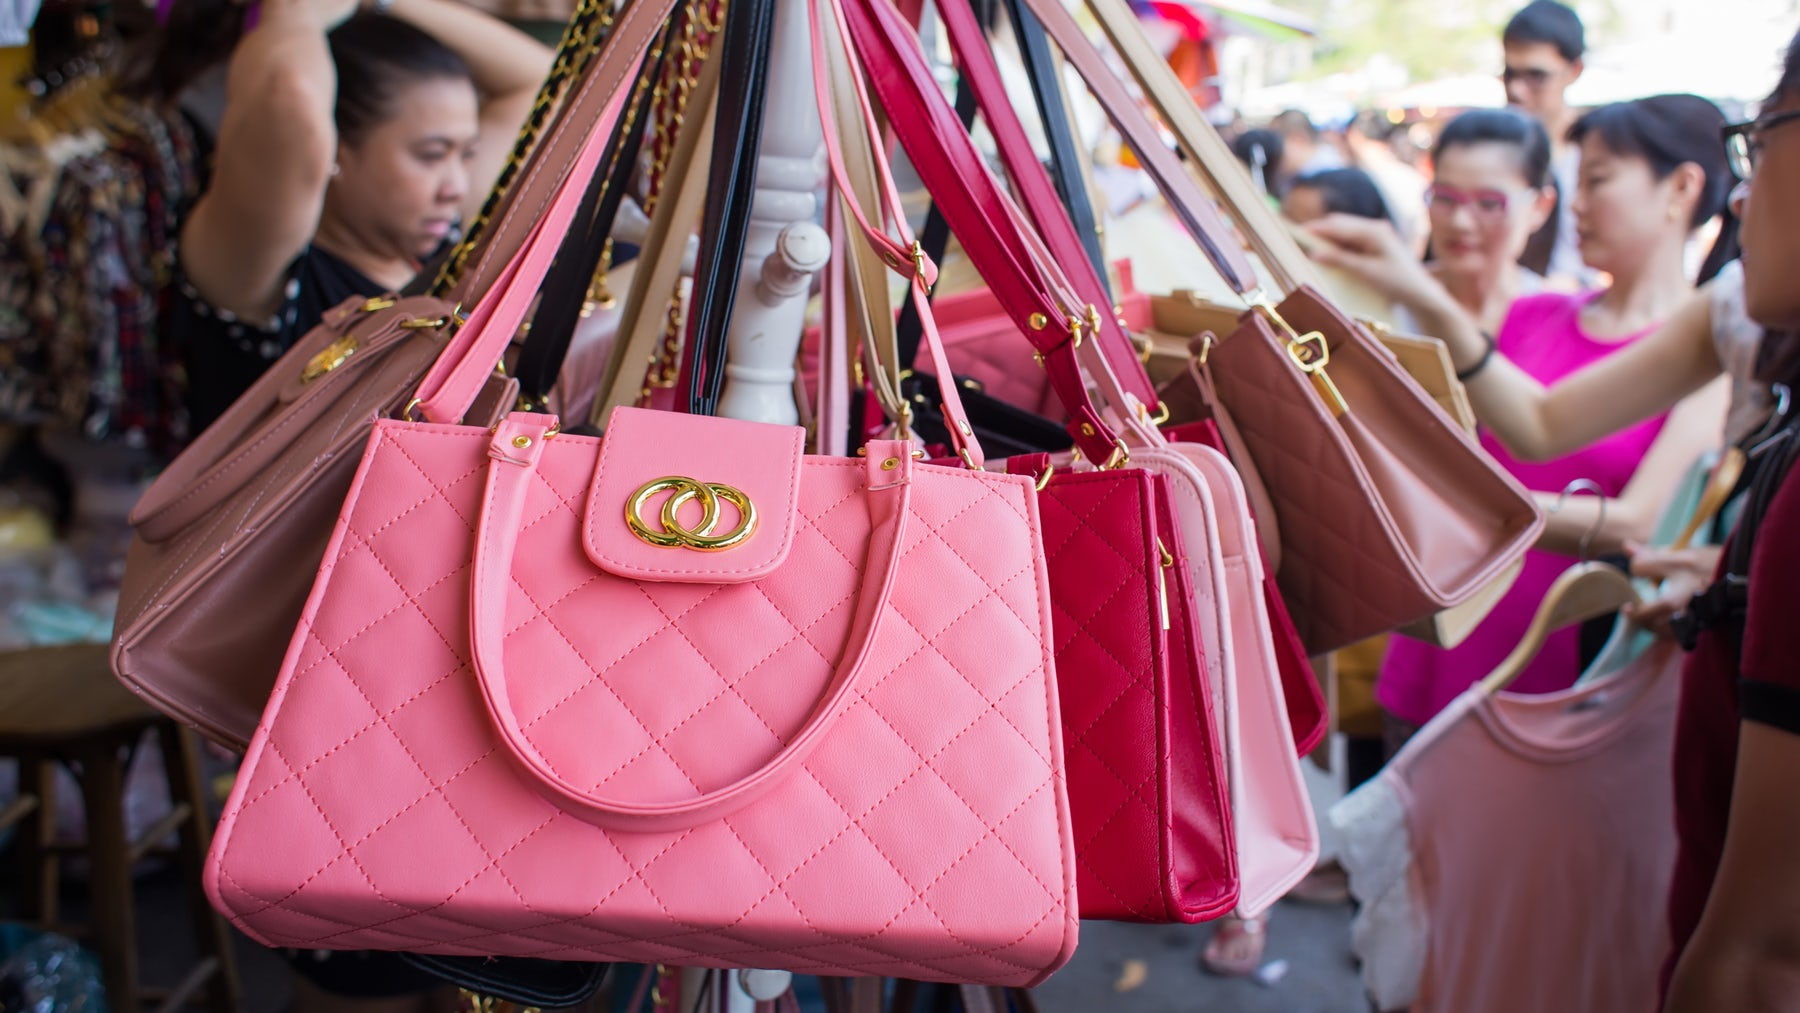 Counterfeit handbags on display in Bangkok, Thailand | Source: Shutterstock